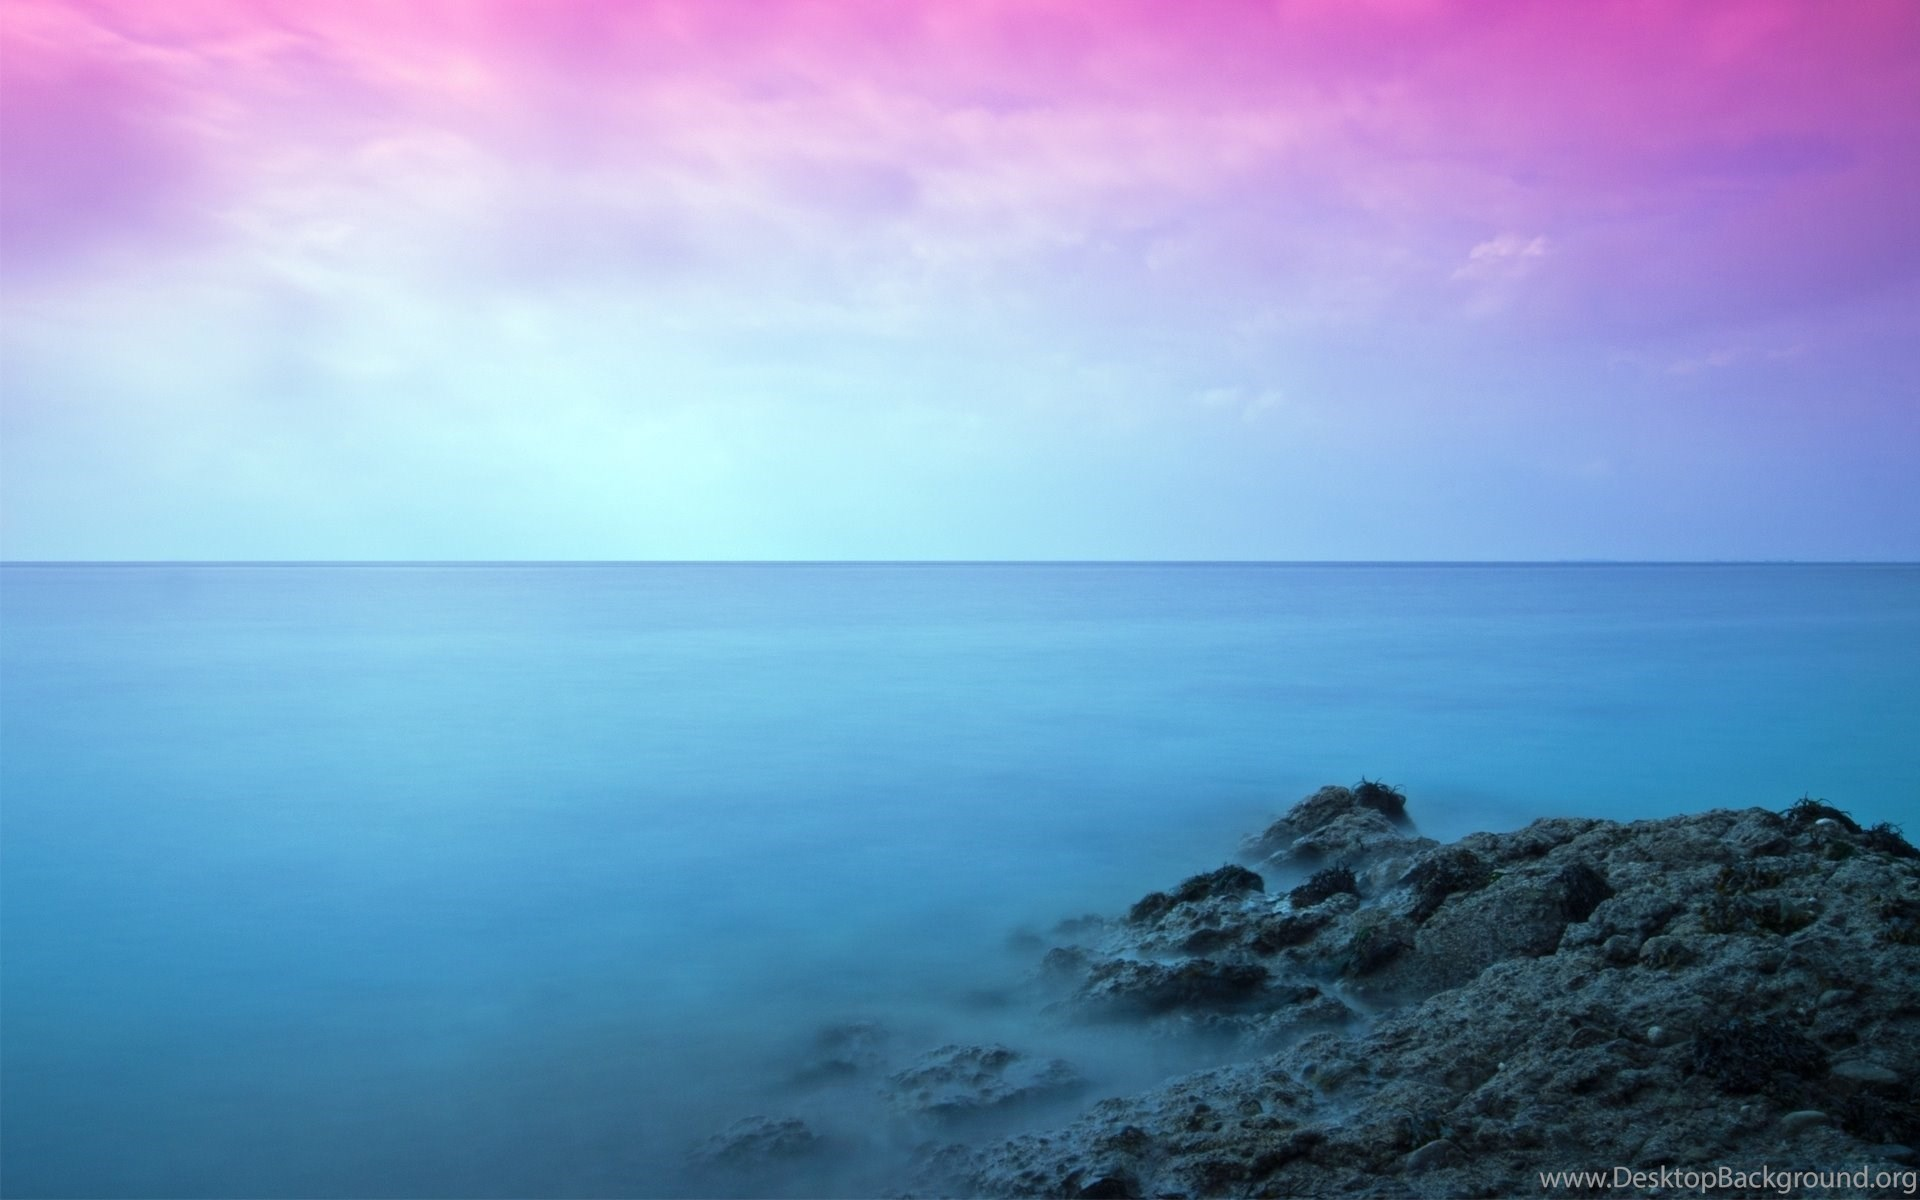 Iphone 5s Stock Wallpaper Pink Sky Rock Sea Nature 1920x1200 Hd Wallpapers And